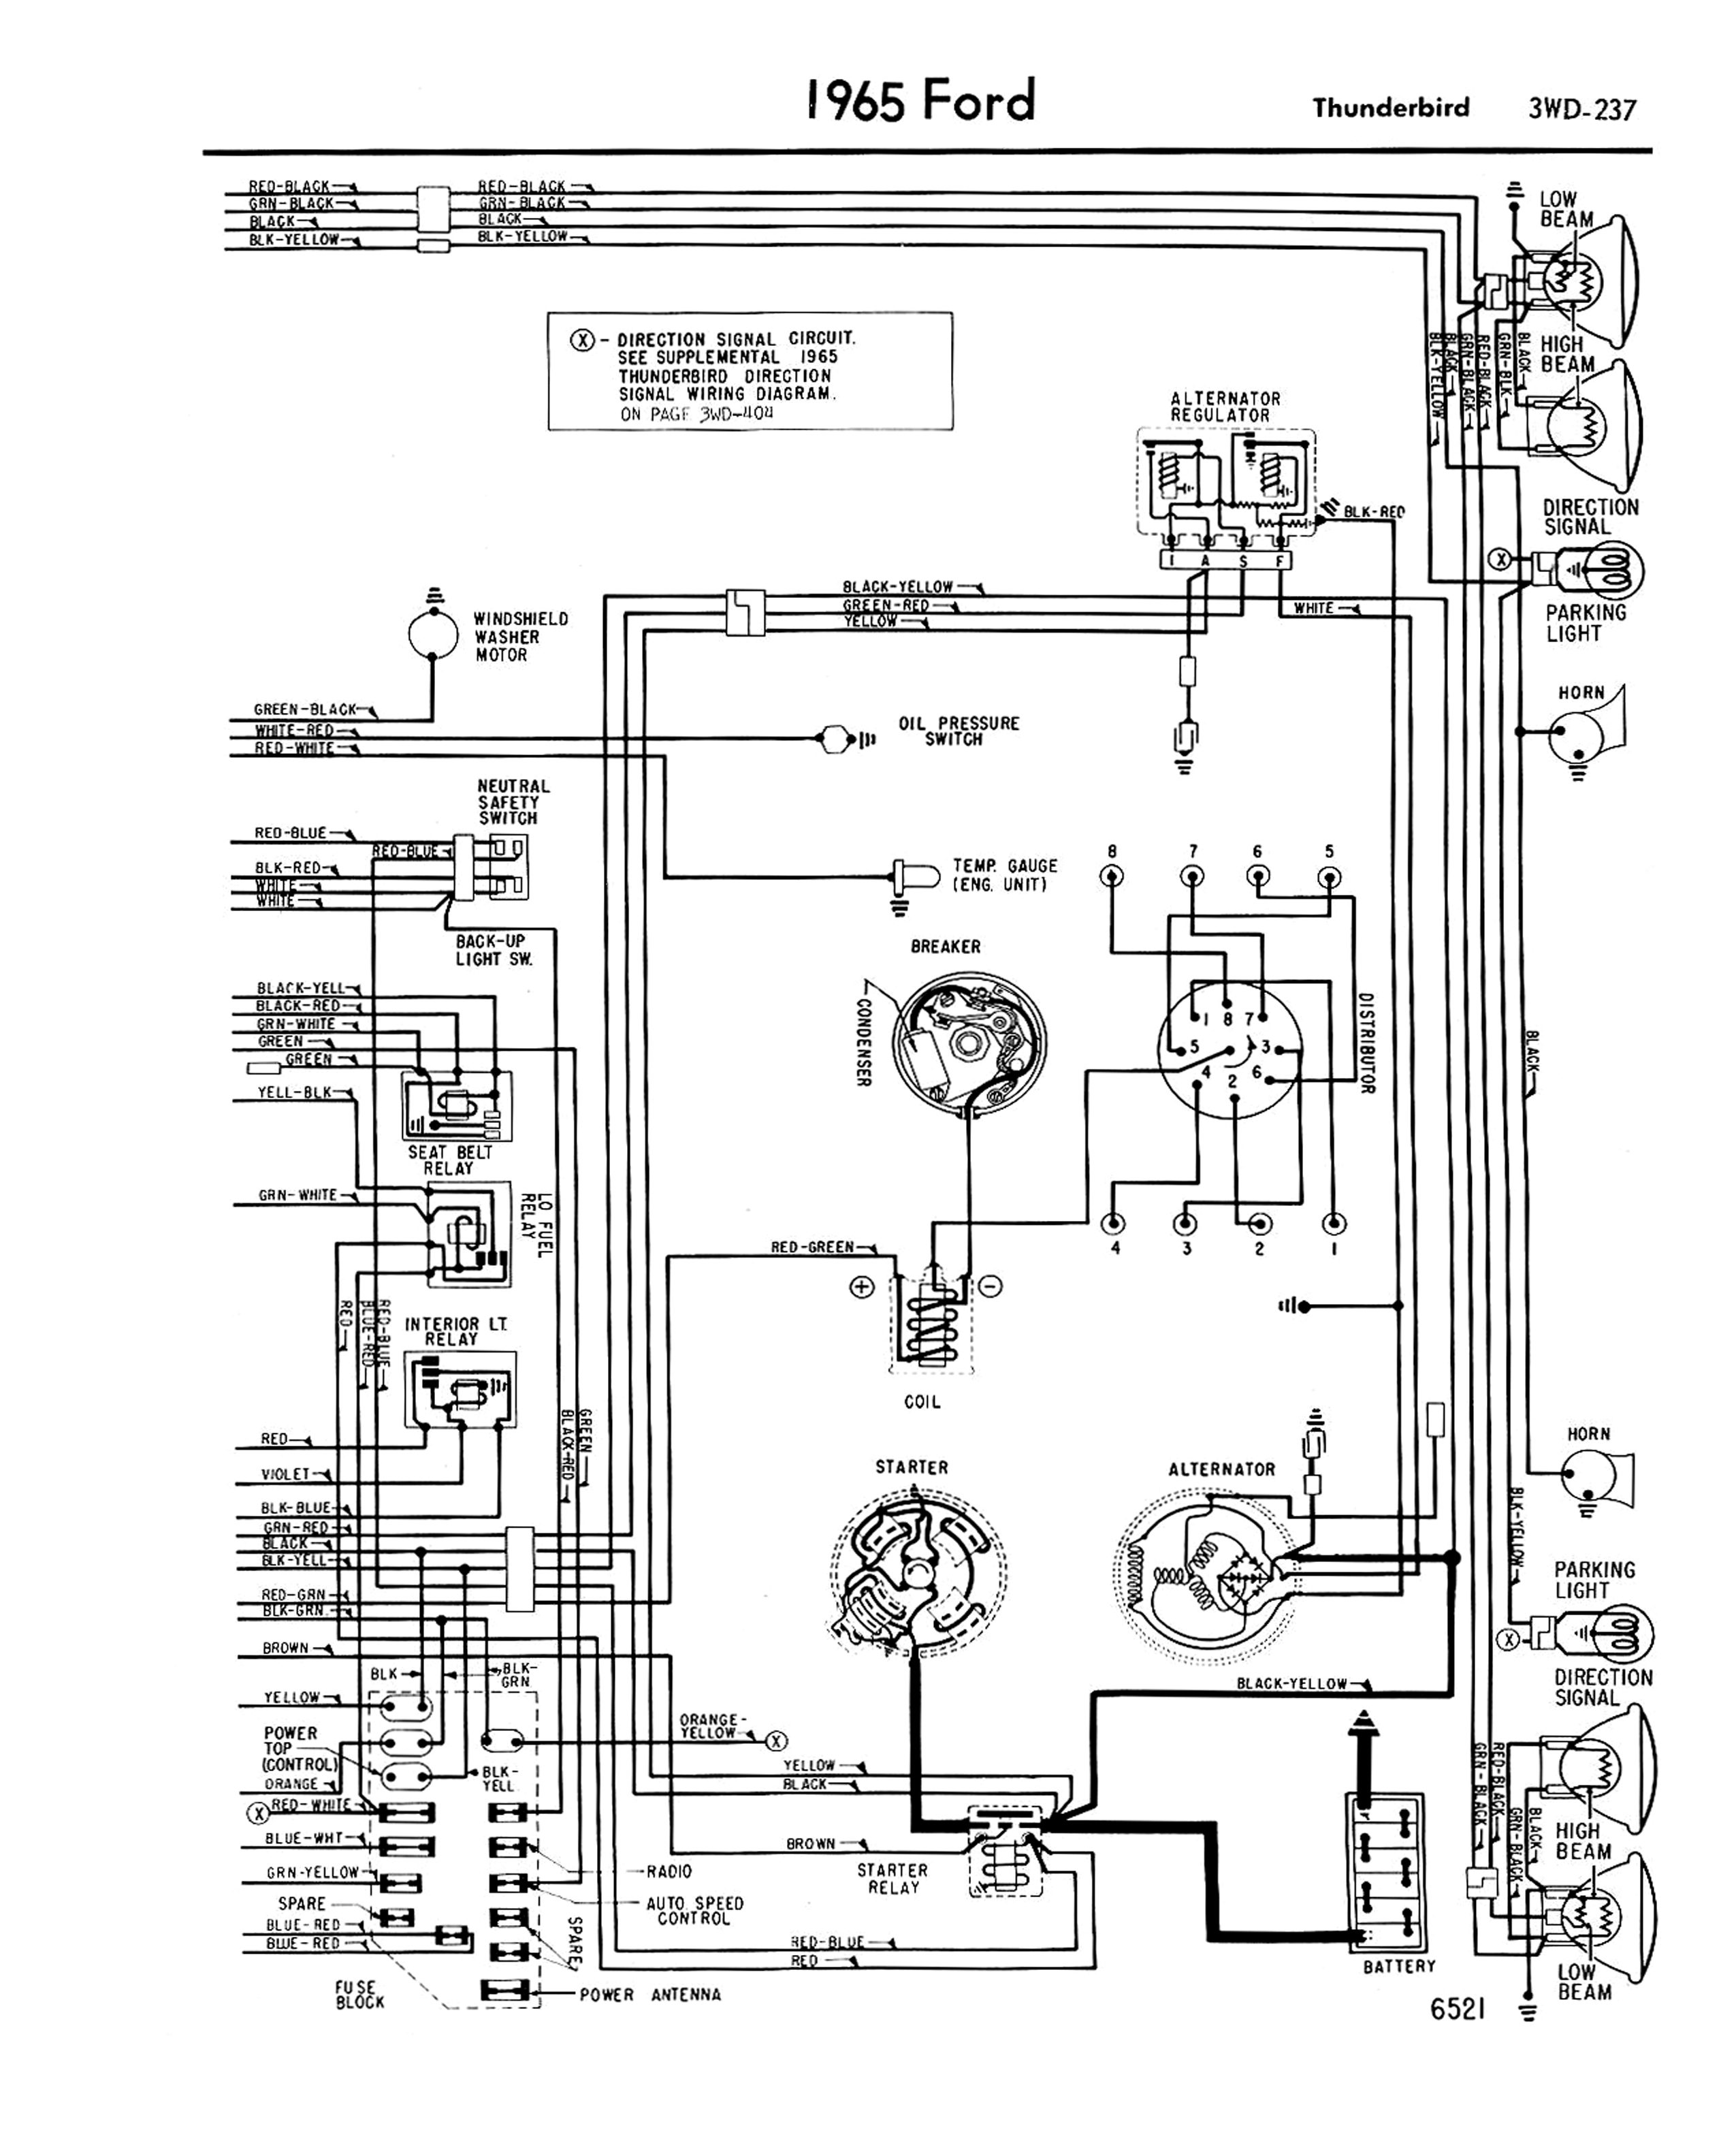 1958 68 Ford Electrical Schematics Camaro Front Light Wiring Diagram Schematic 16